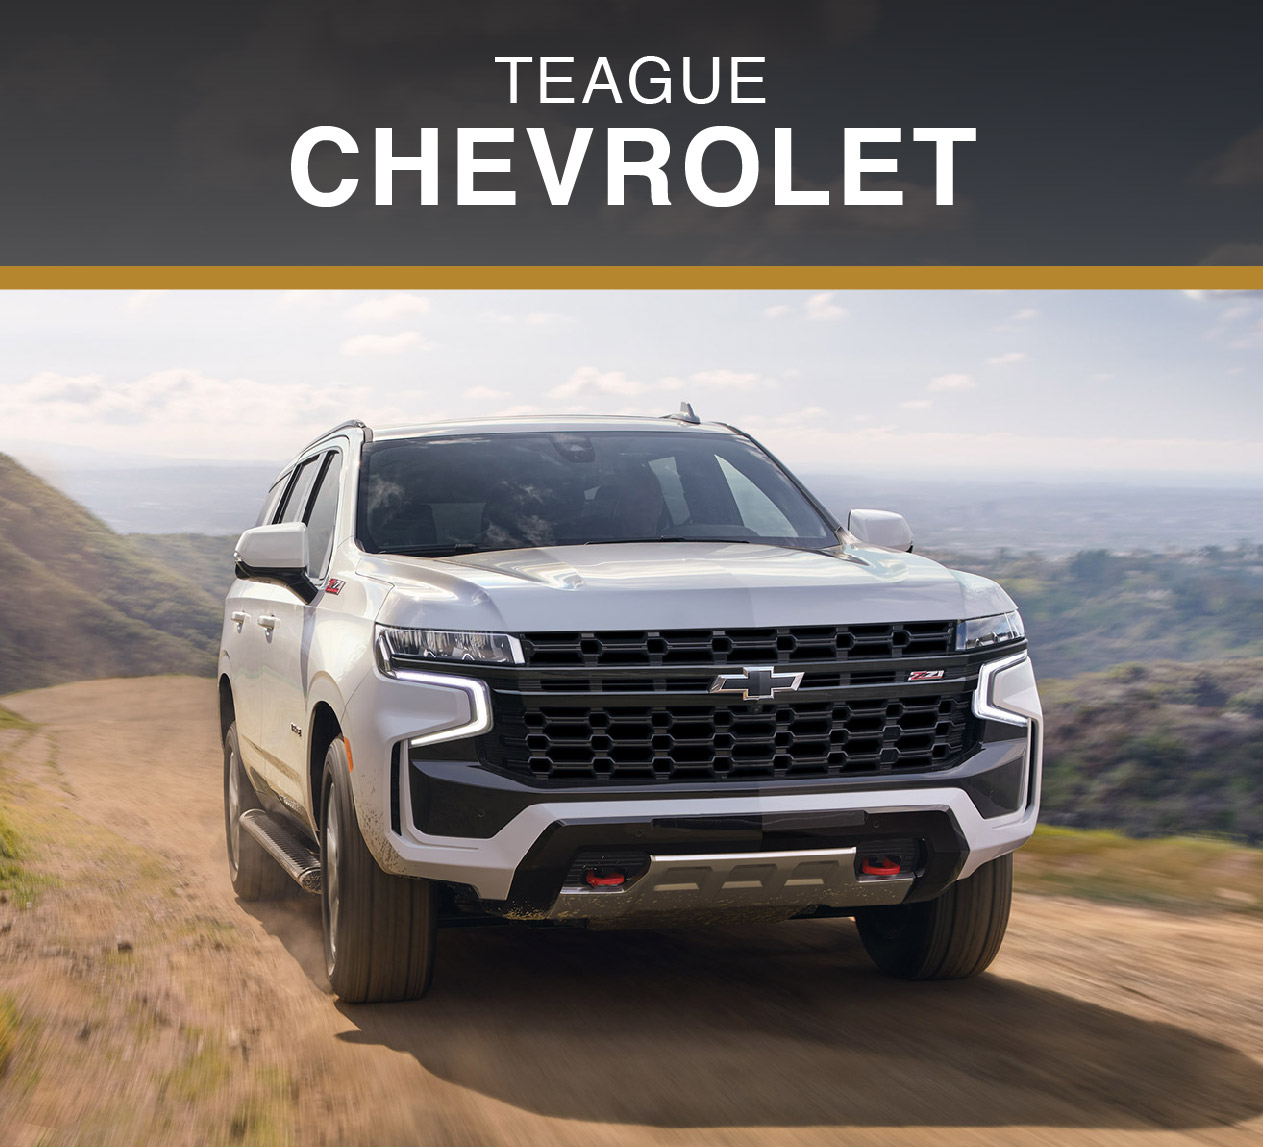 Visit Teague Chevrolet